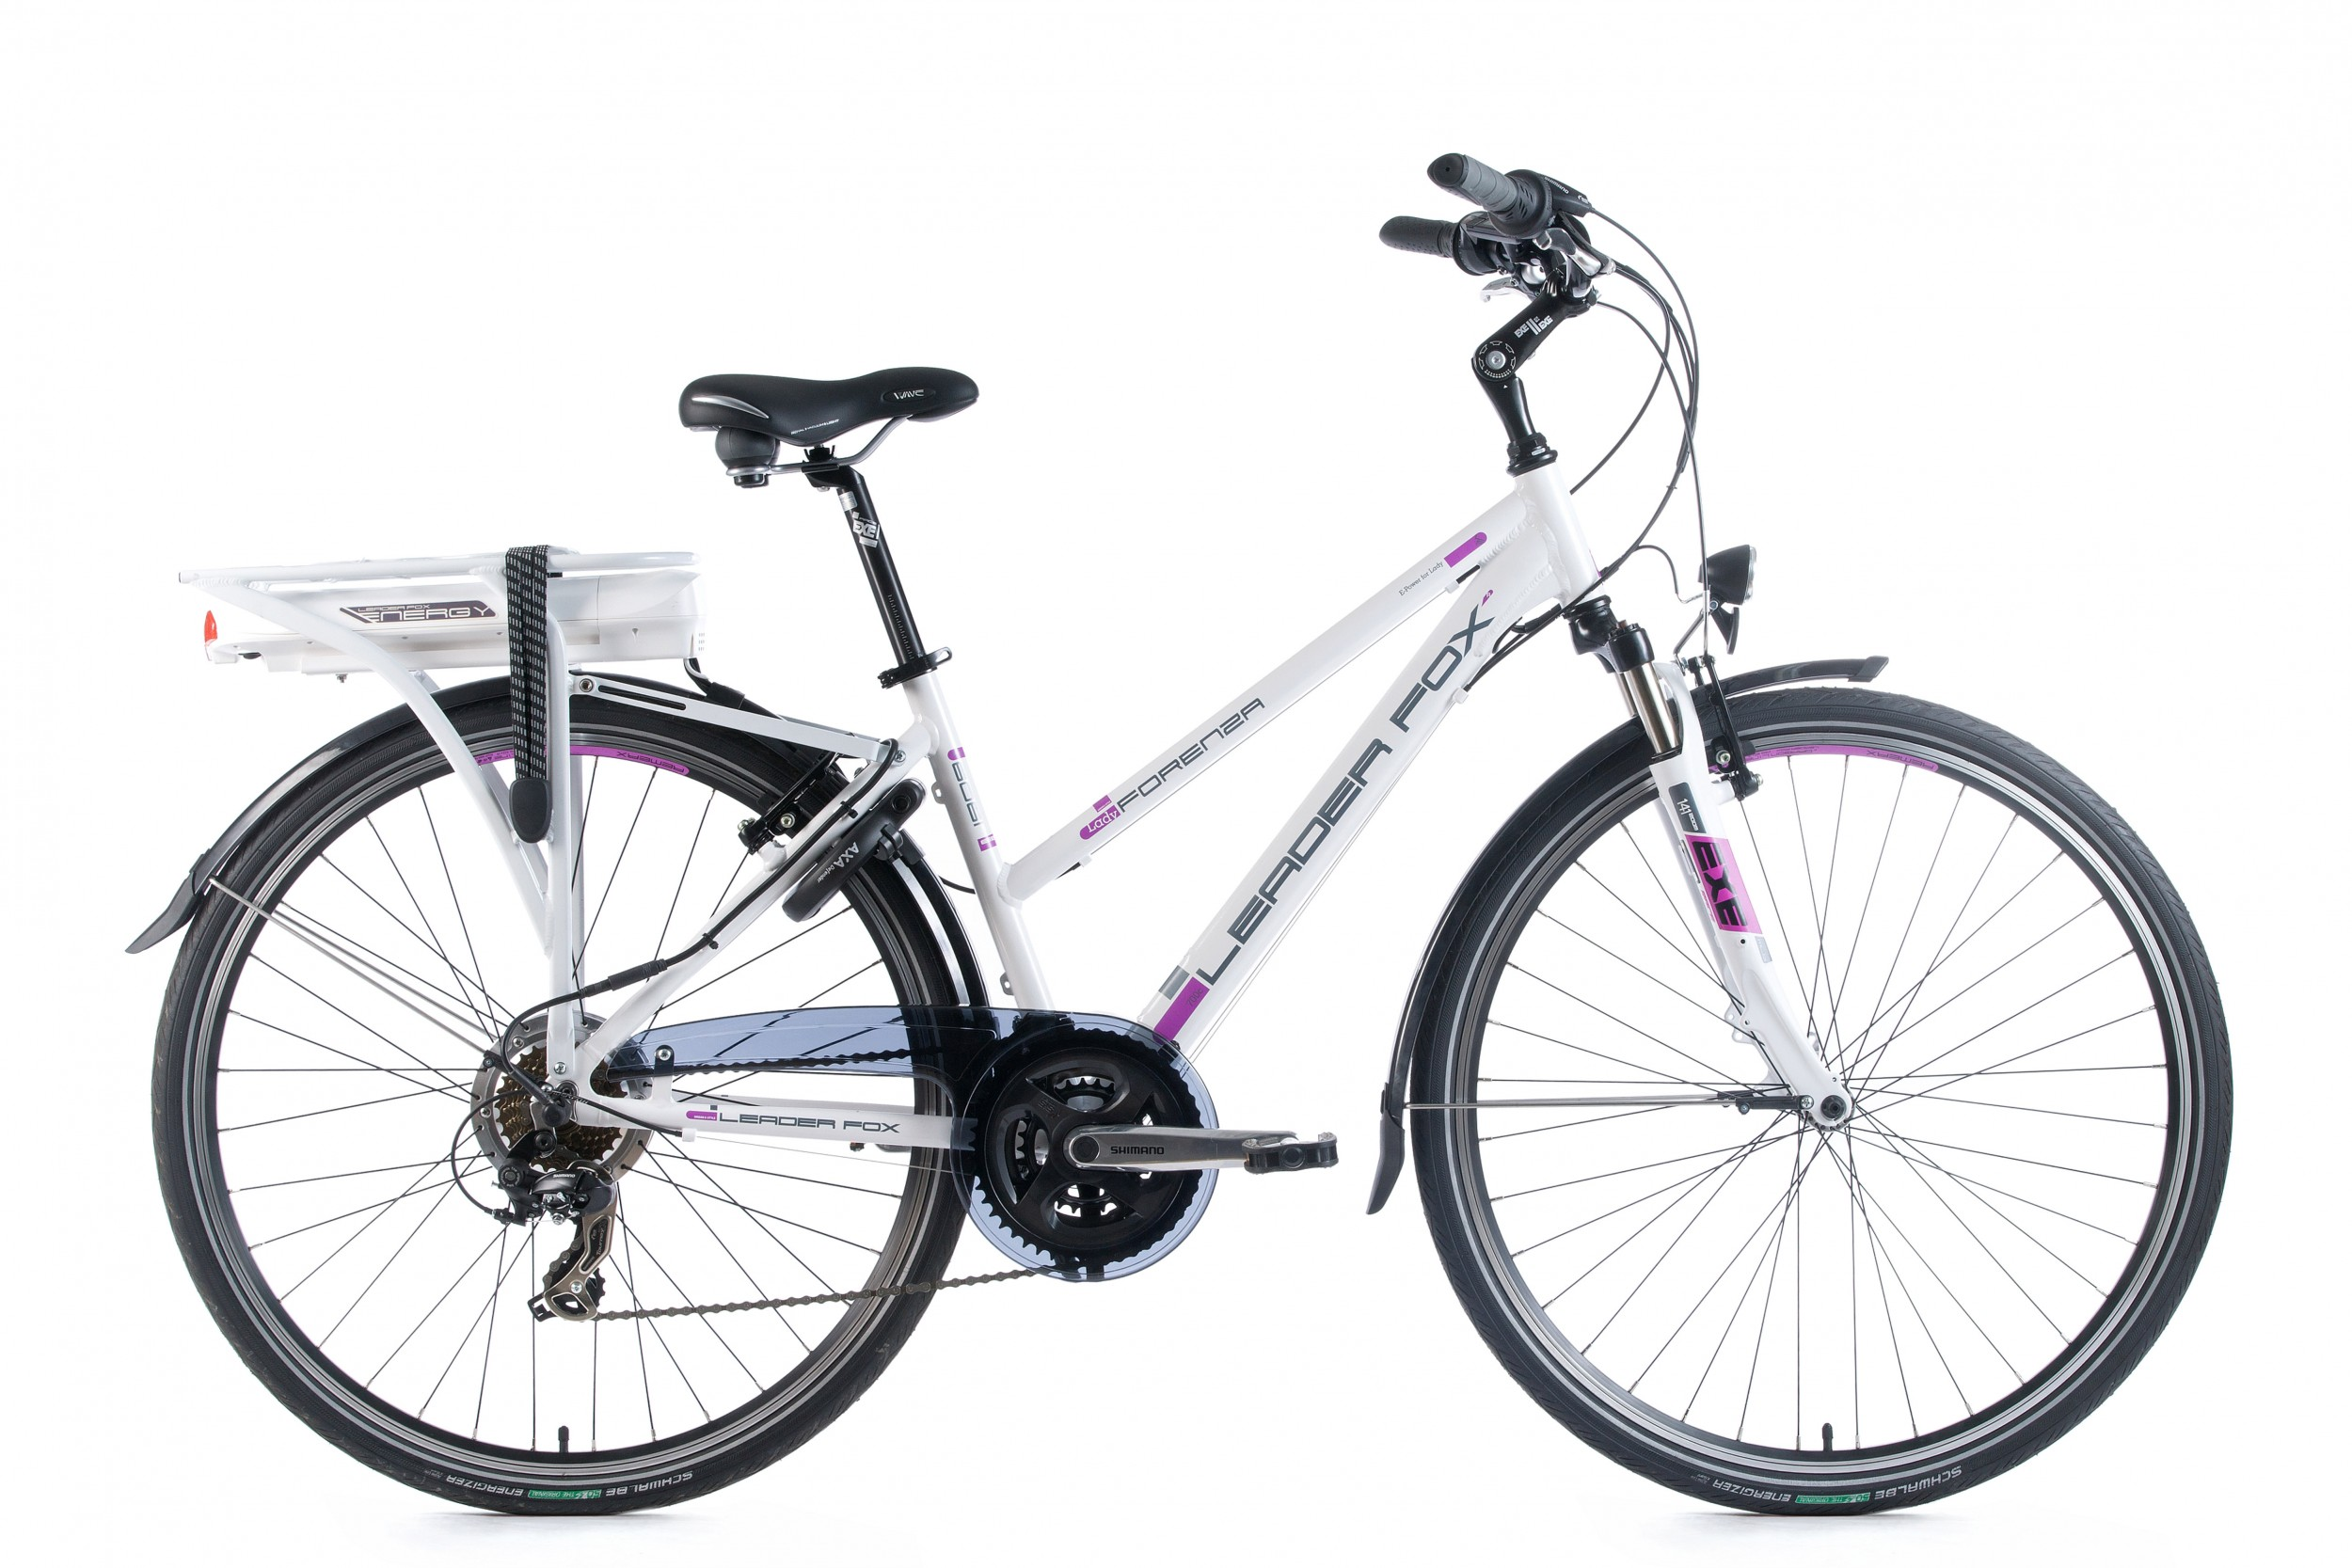 LeaderFox Forenza E-bike Dames 43cm 21V - Wit (13Ah)